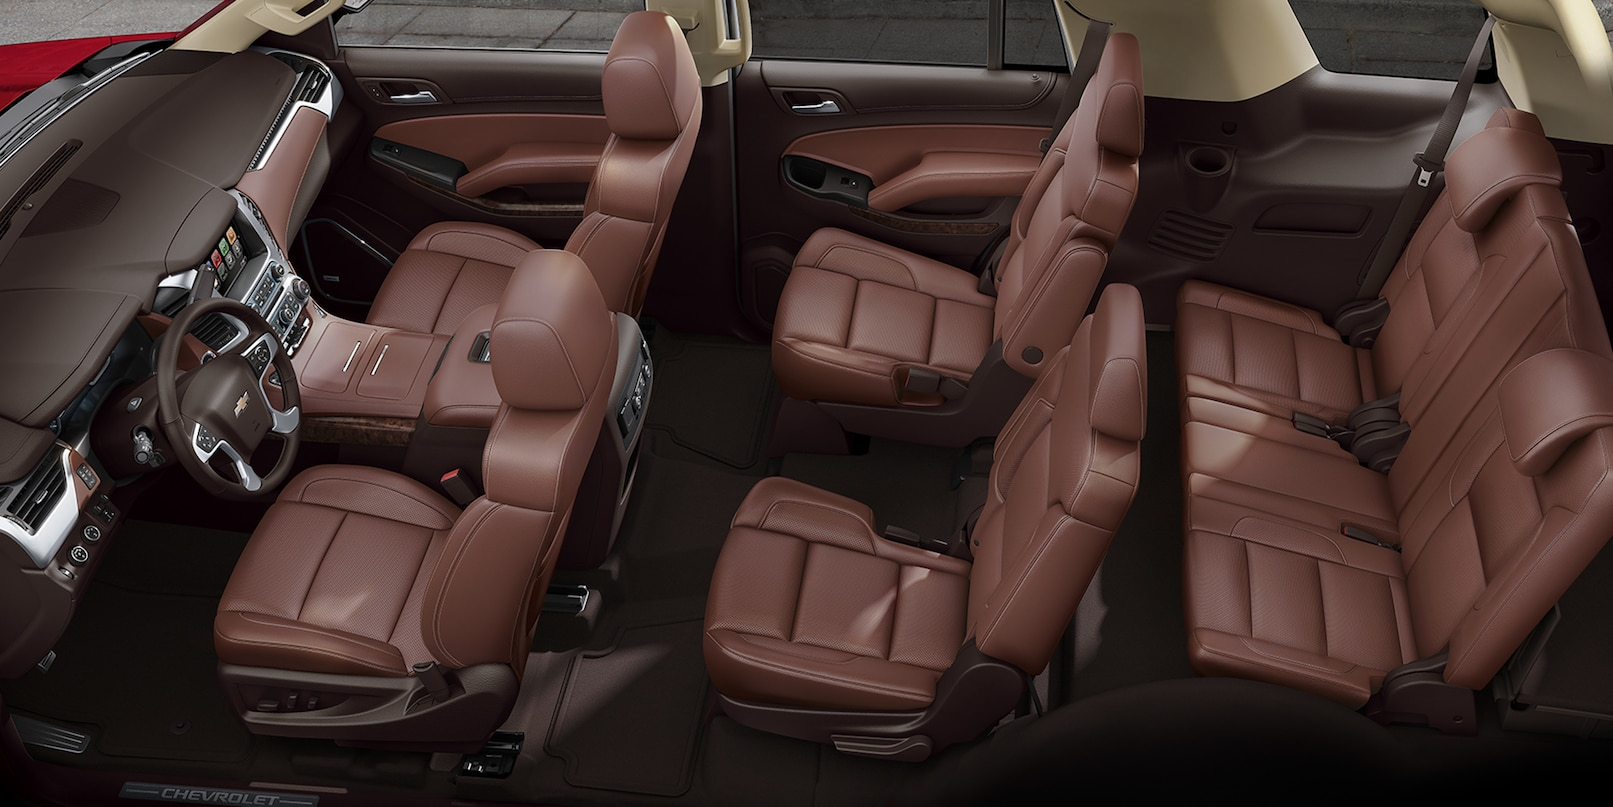 Plenty of Seating Inside the 2018 Tahoe!